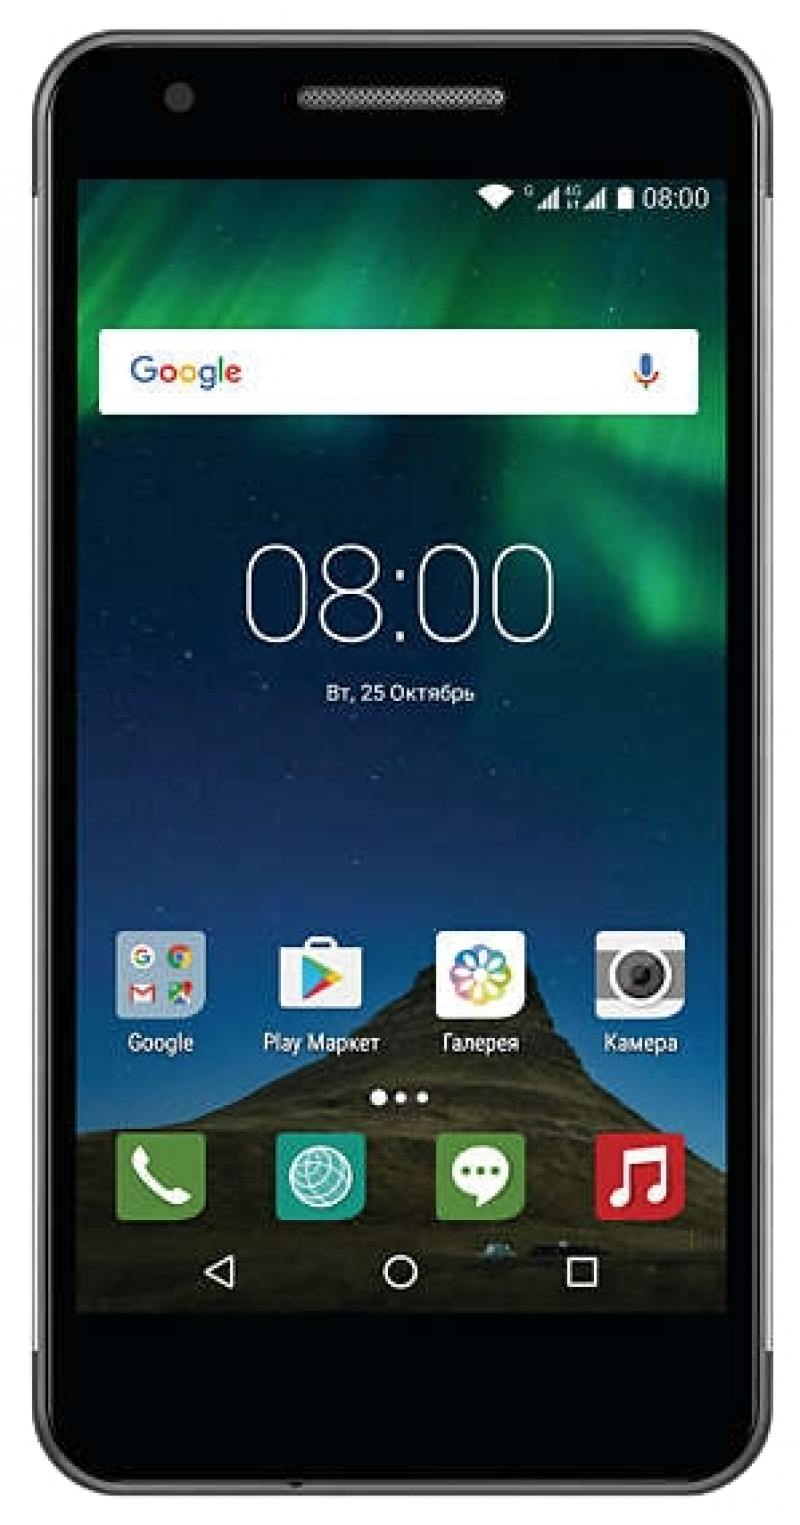 Смартфон Philips X588 Black MediaTek MT6750 (1.5)/32 Gb/3 Gb/5 (1280x720)/DualSim/3G/4G/BT/Android 6.0 смартфон digma hit q500 3g ht5035pg gold spreadtrum sc7731c 1 3 8 gb 1 gb 5 854x480 dualsim 3g bt android 7 0